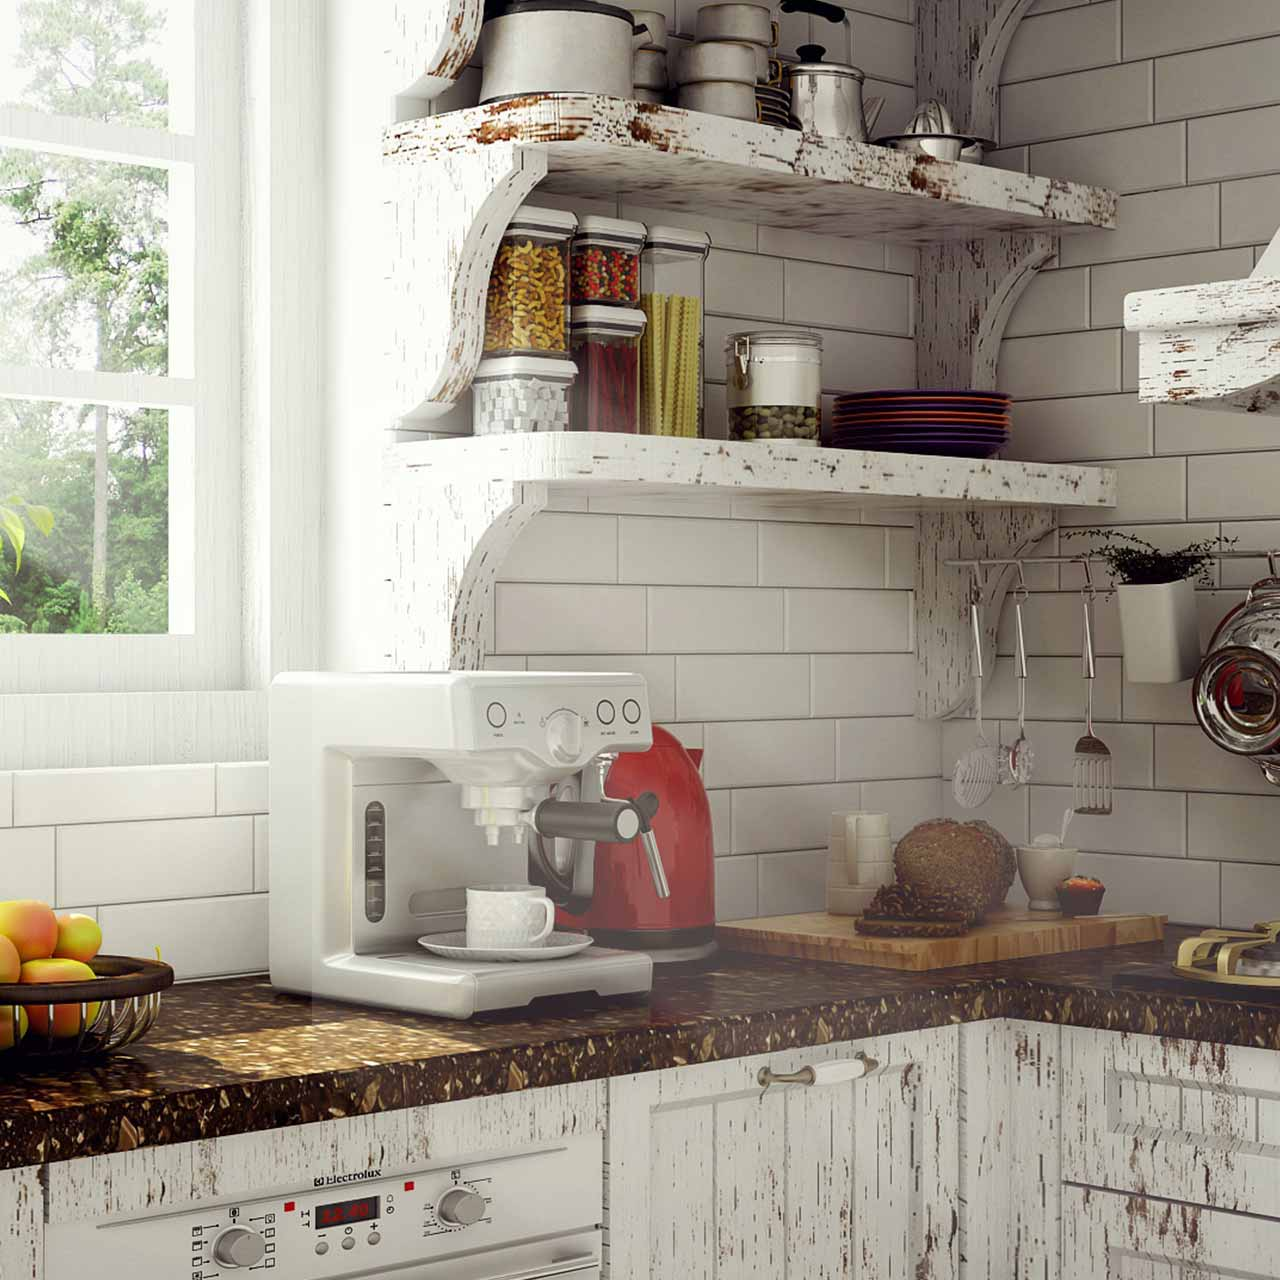 Kitchen Shelves - Design Ideas For Kitchen